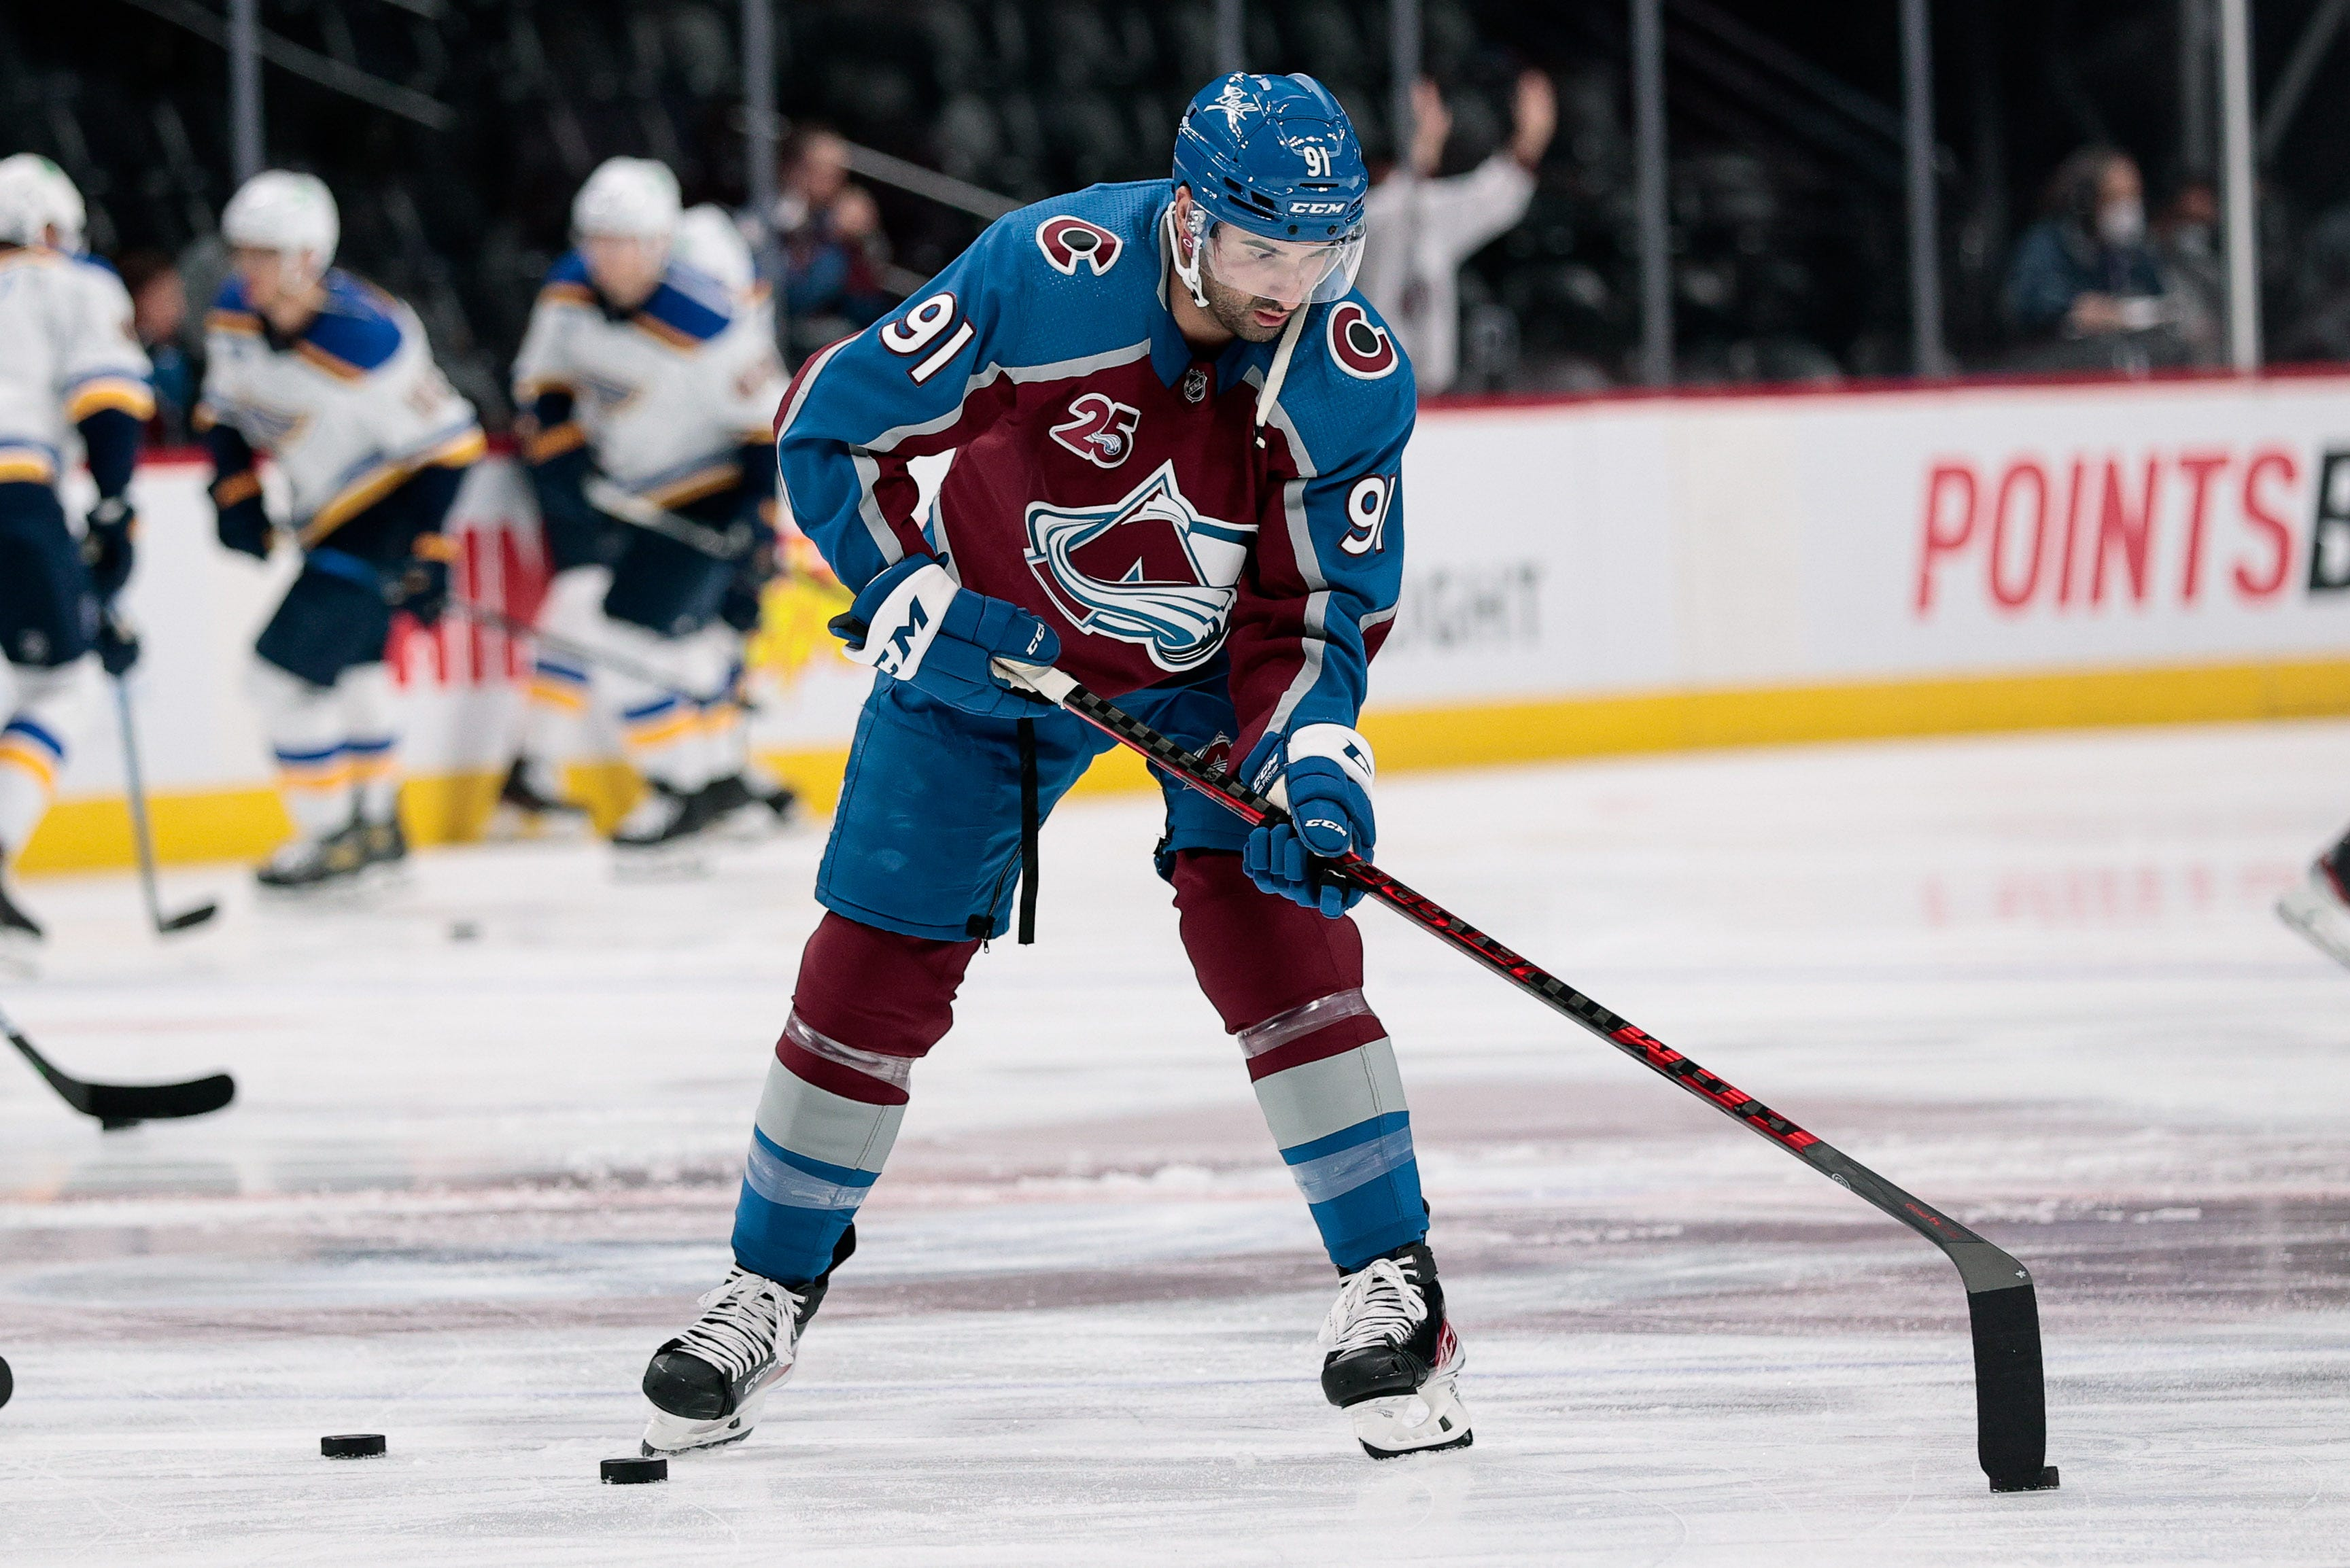 Colorado Avalanche forward Nazem Kadri ejected for hit to head of St. Louis Blues' Justin Faulk